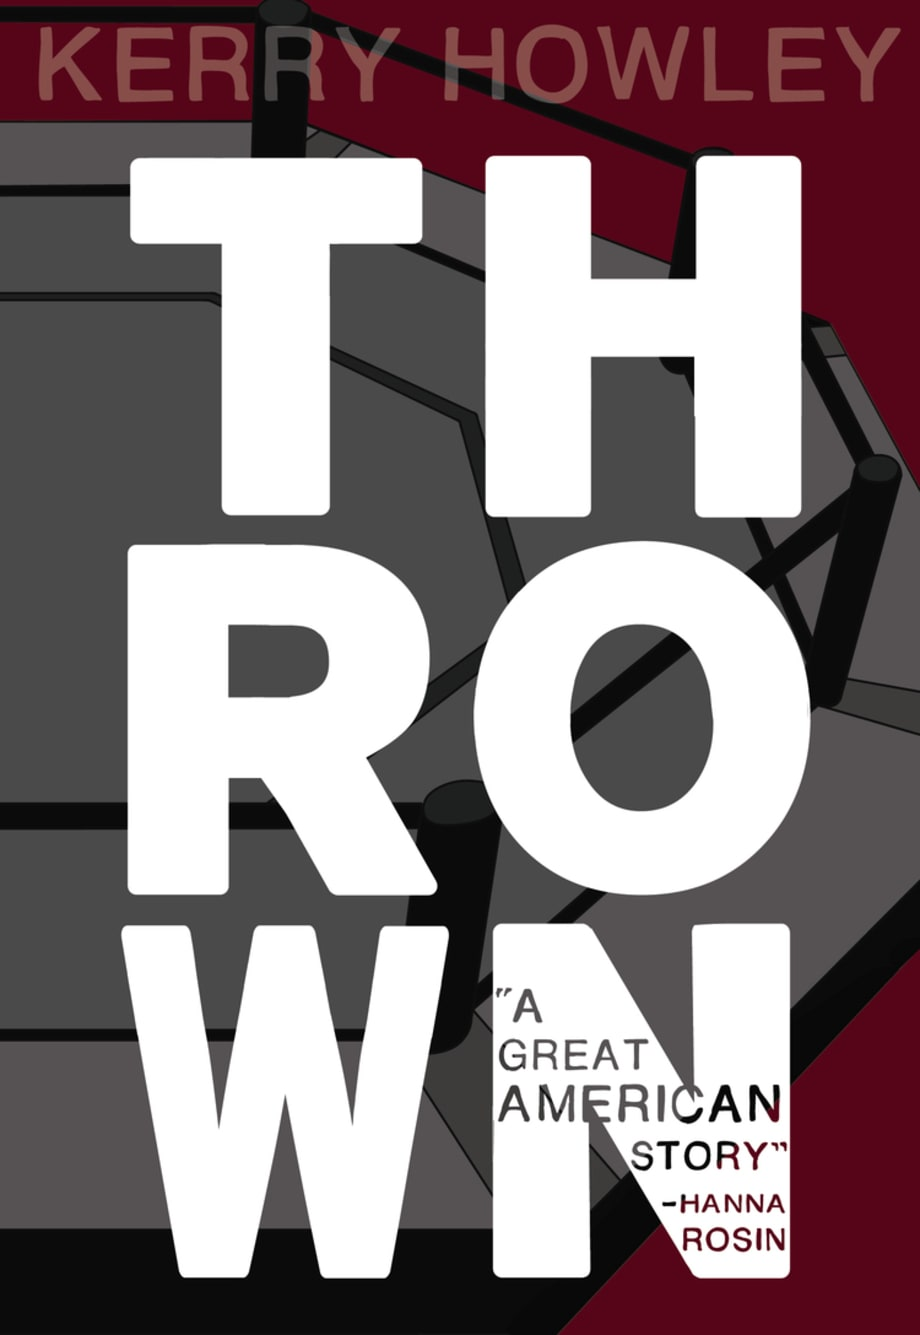 For the Guy Who Swings for the Fences: Thrown by Kerry Howley